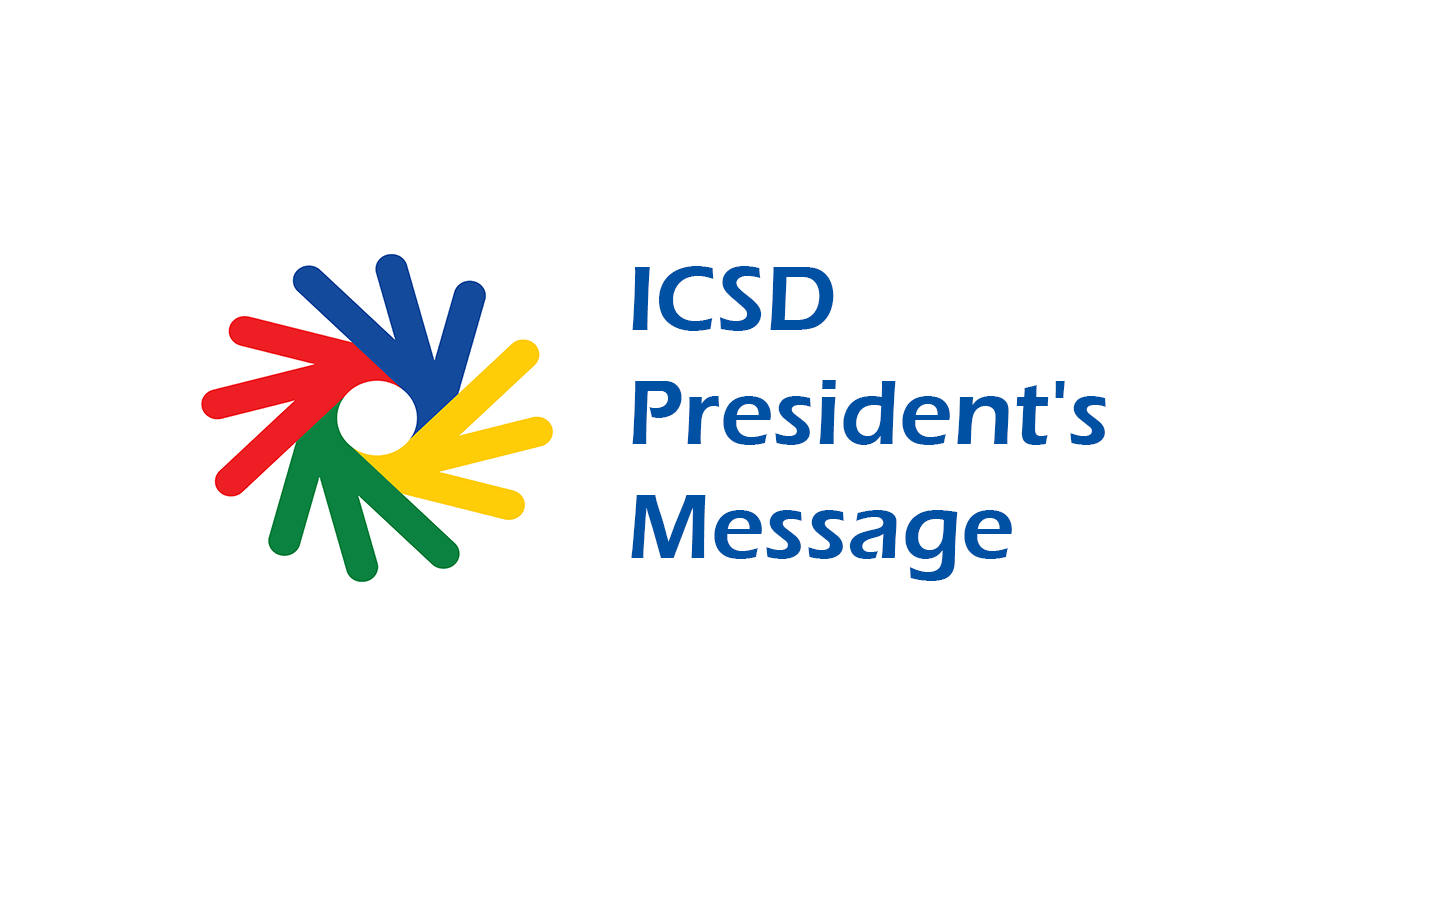 2019 Happy New Year Wishes and Greetings from the President of ICSD